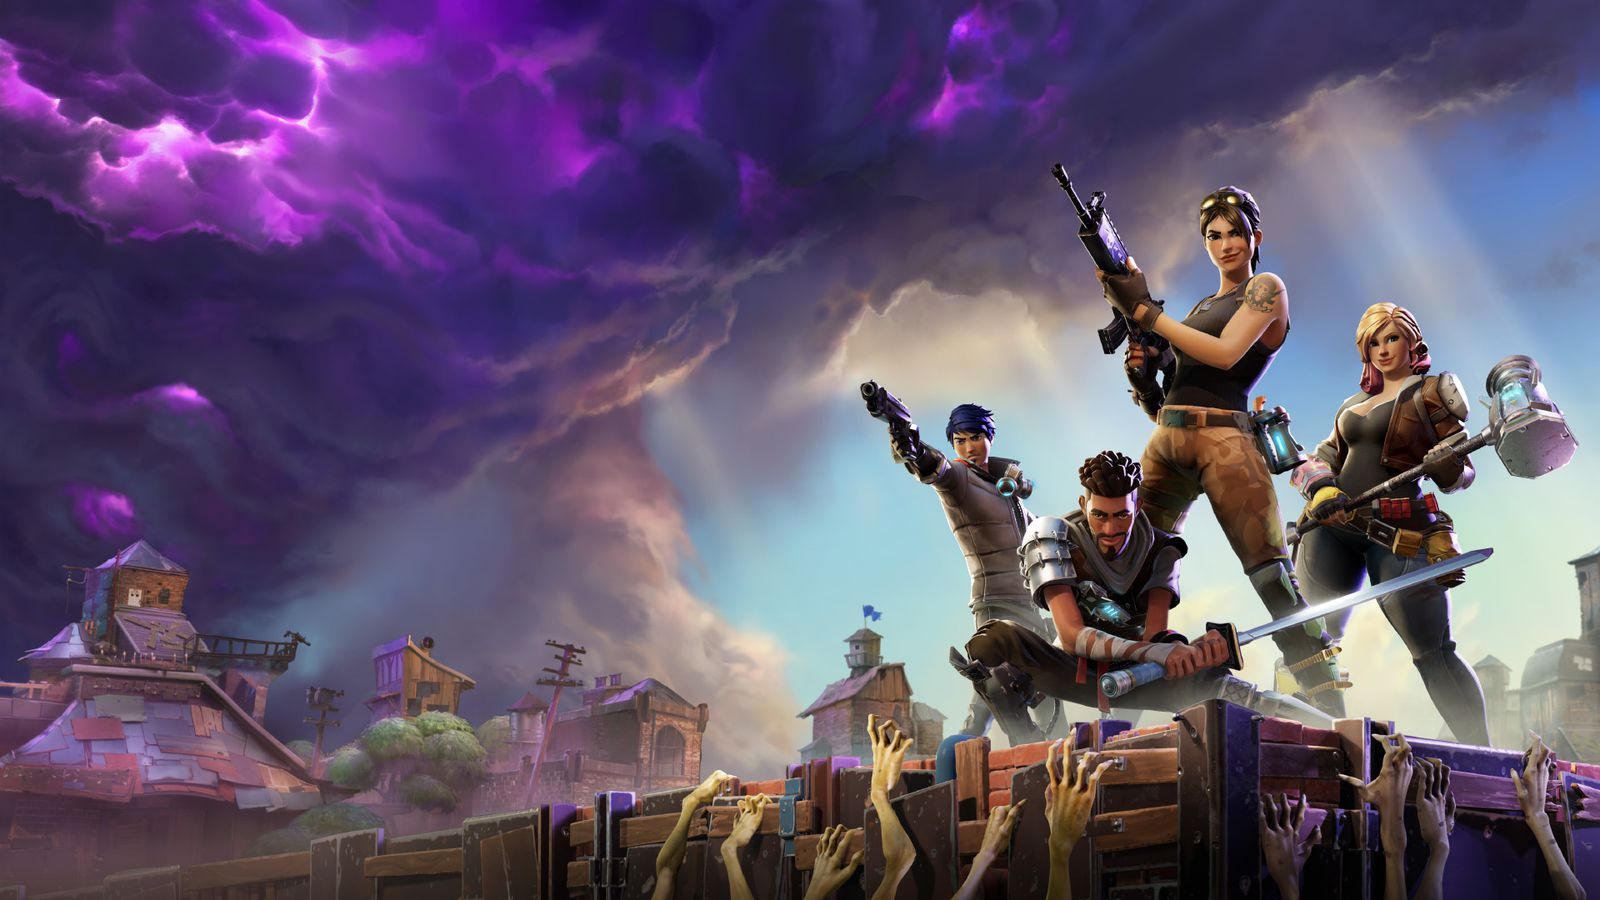 Photo of Fortnite: la versione mobile ha prodotto ricavi per 1 miliardo di dollari